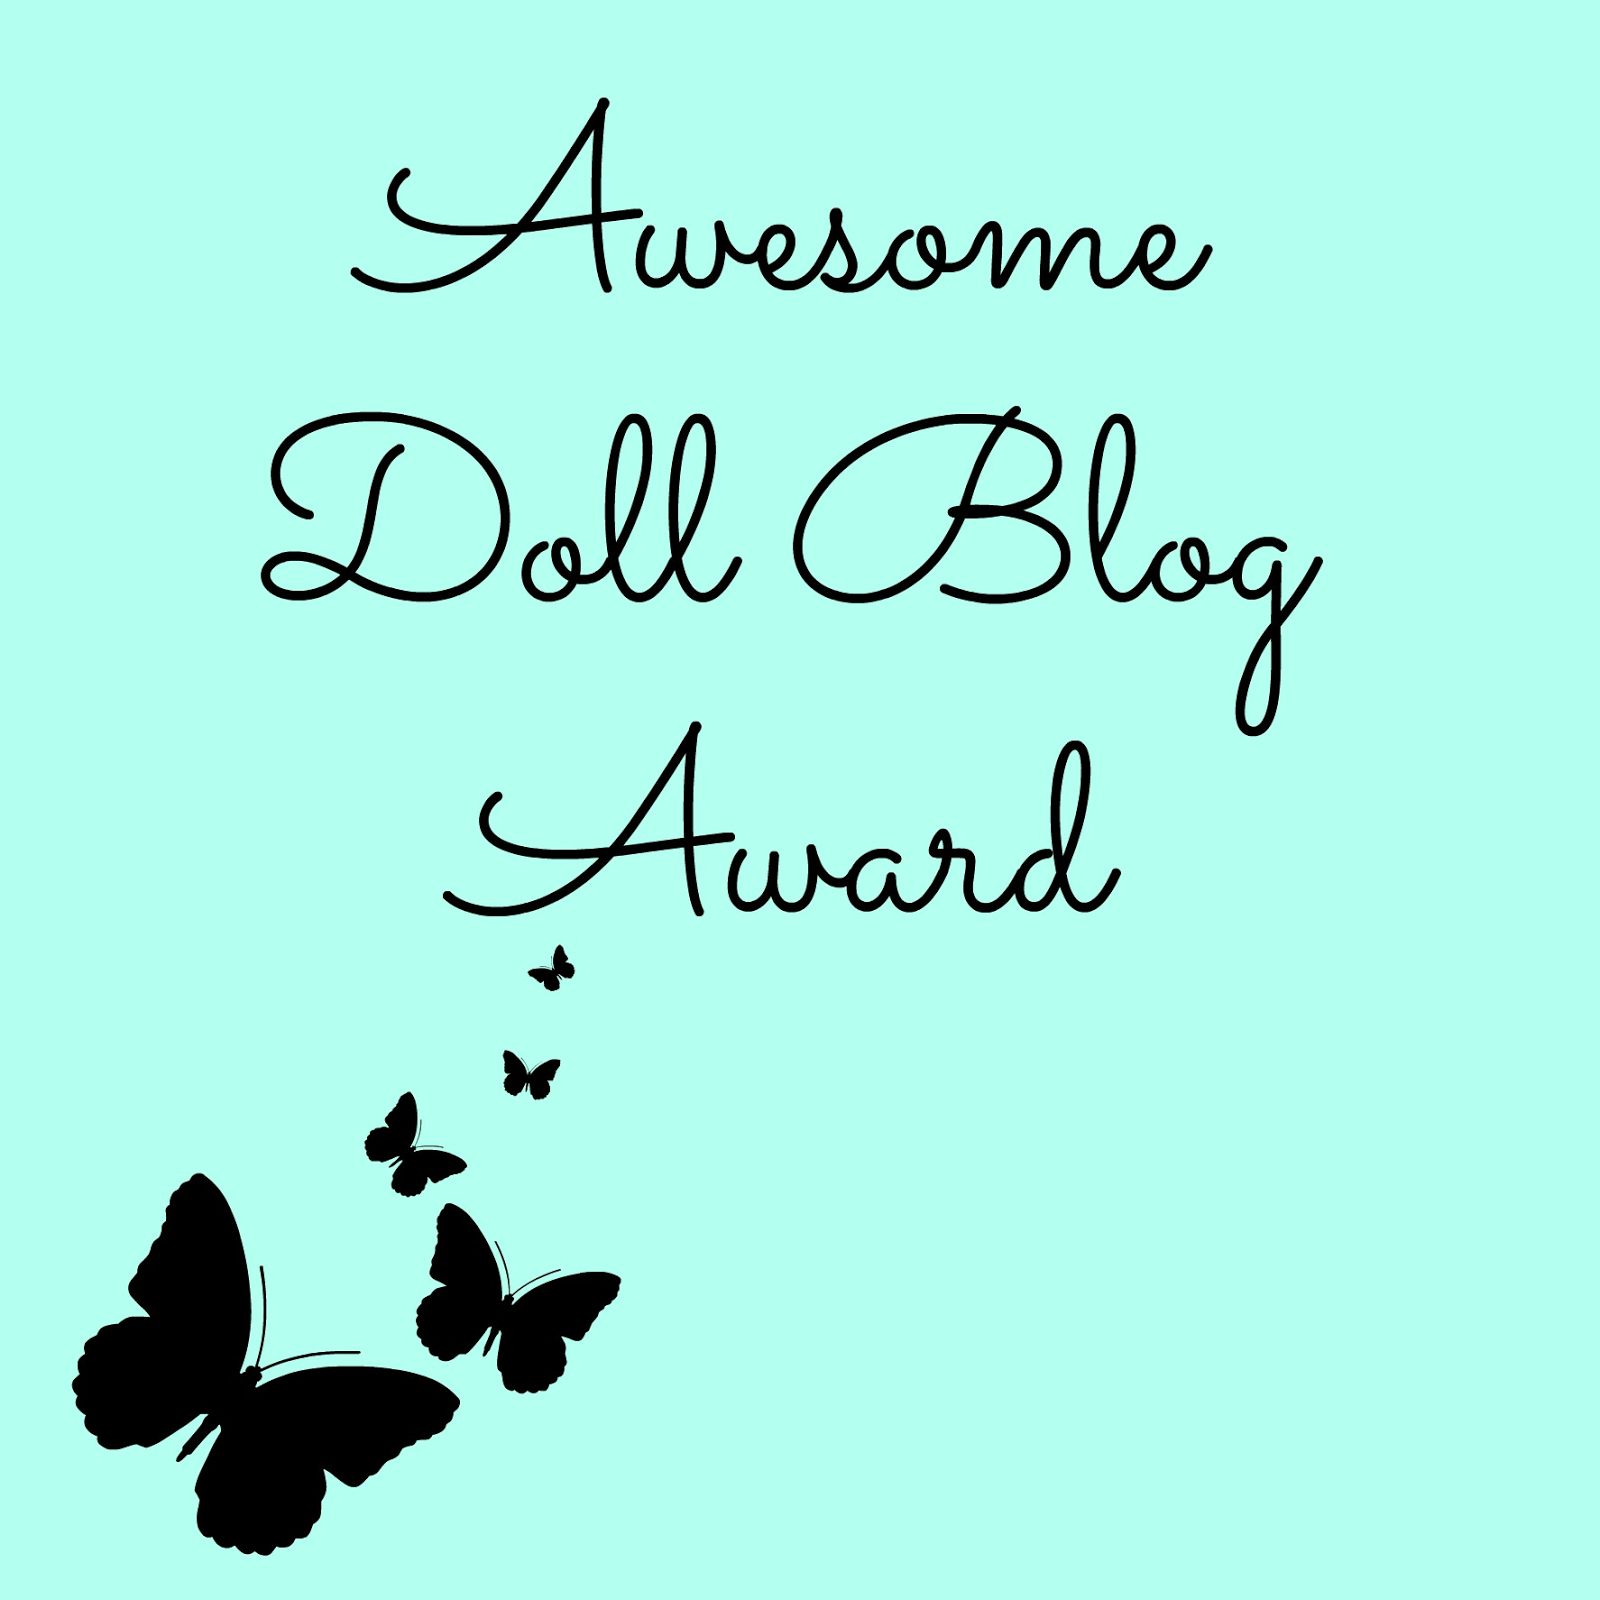 The Awesome Doll Blog Award!